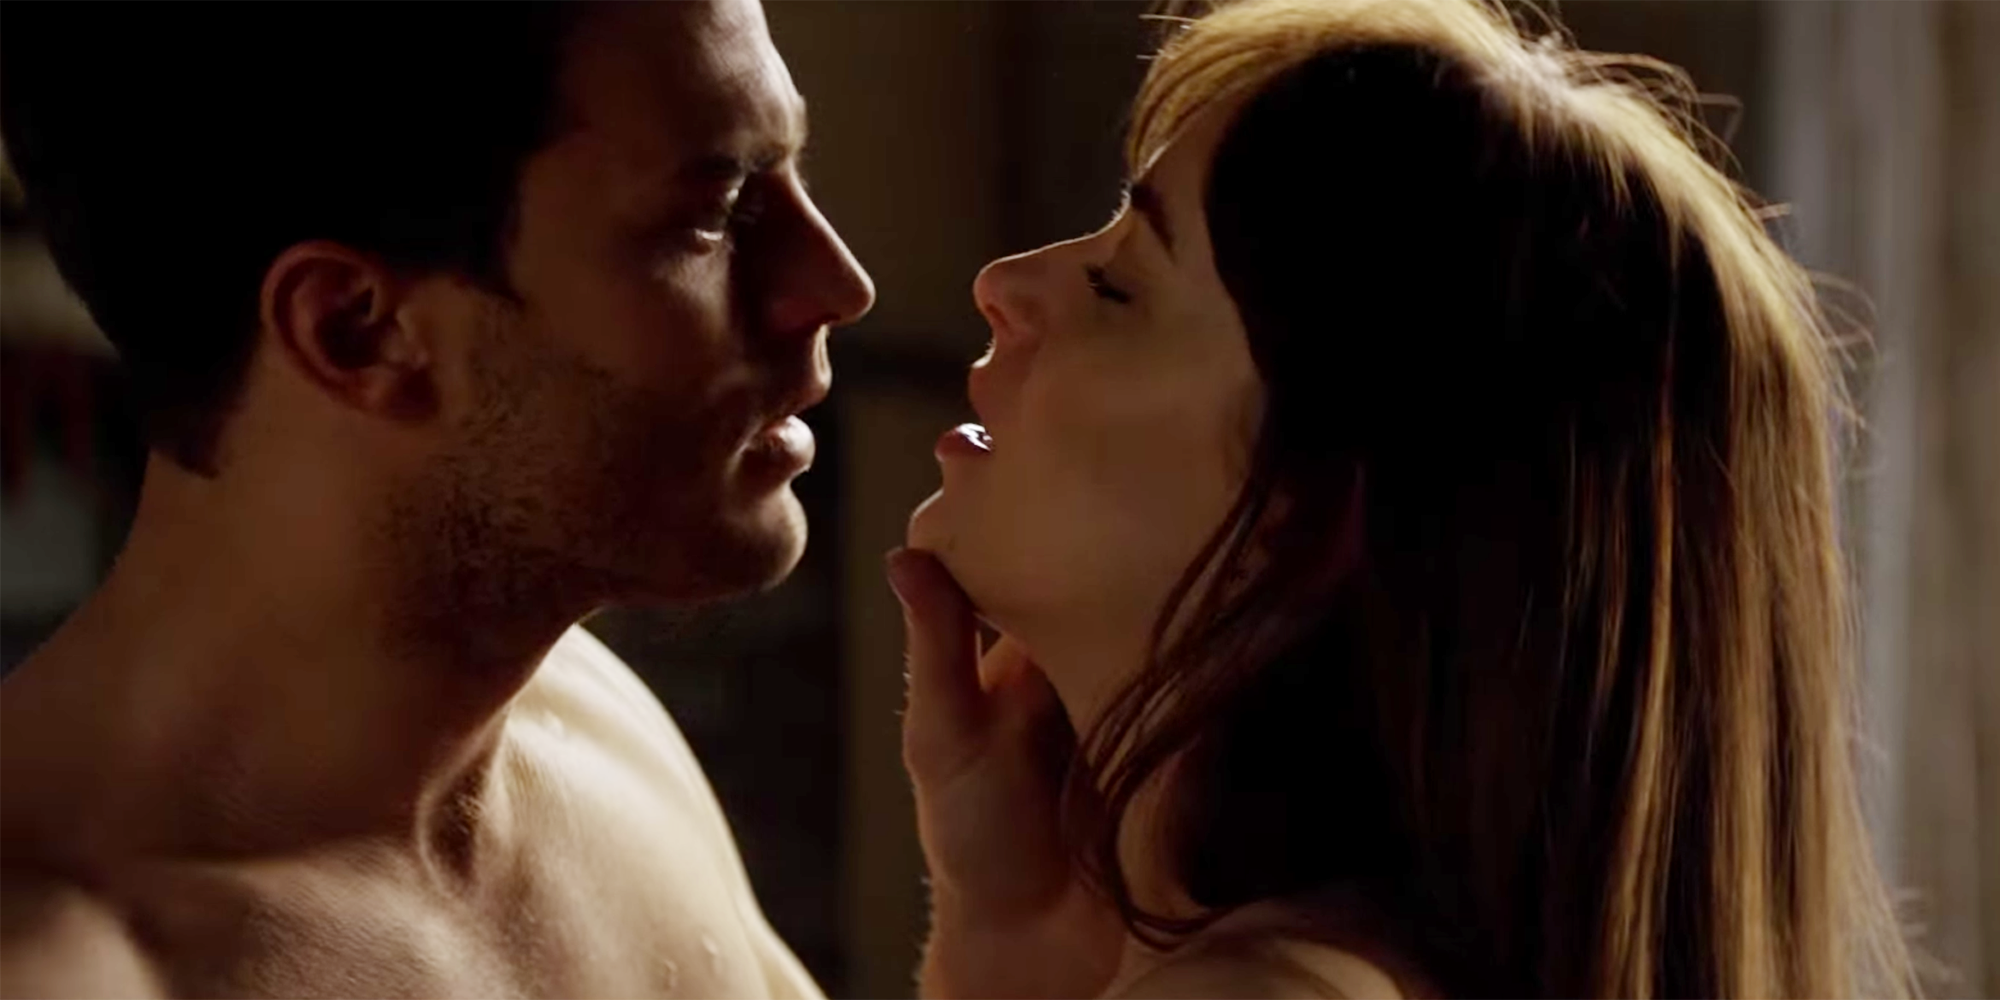 Fifty Shades Darker Movie Vs Book Differences Between 50 Shades Film And Book